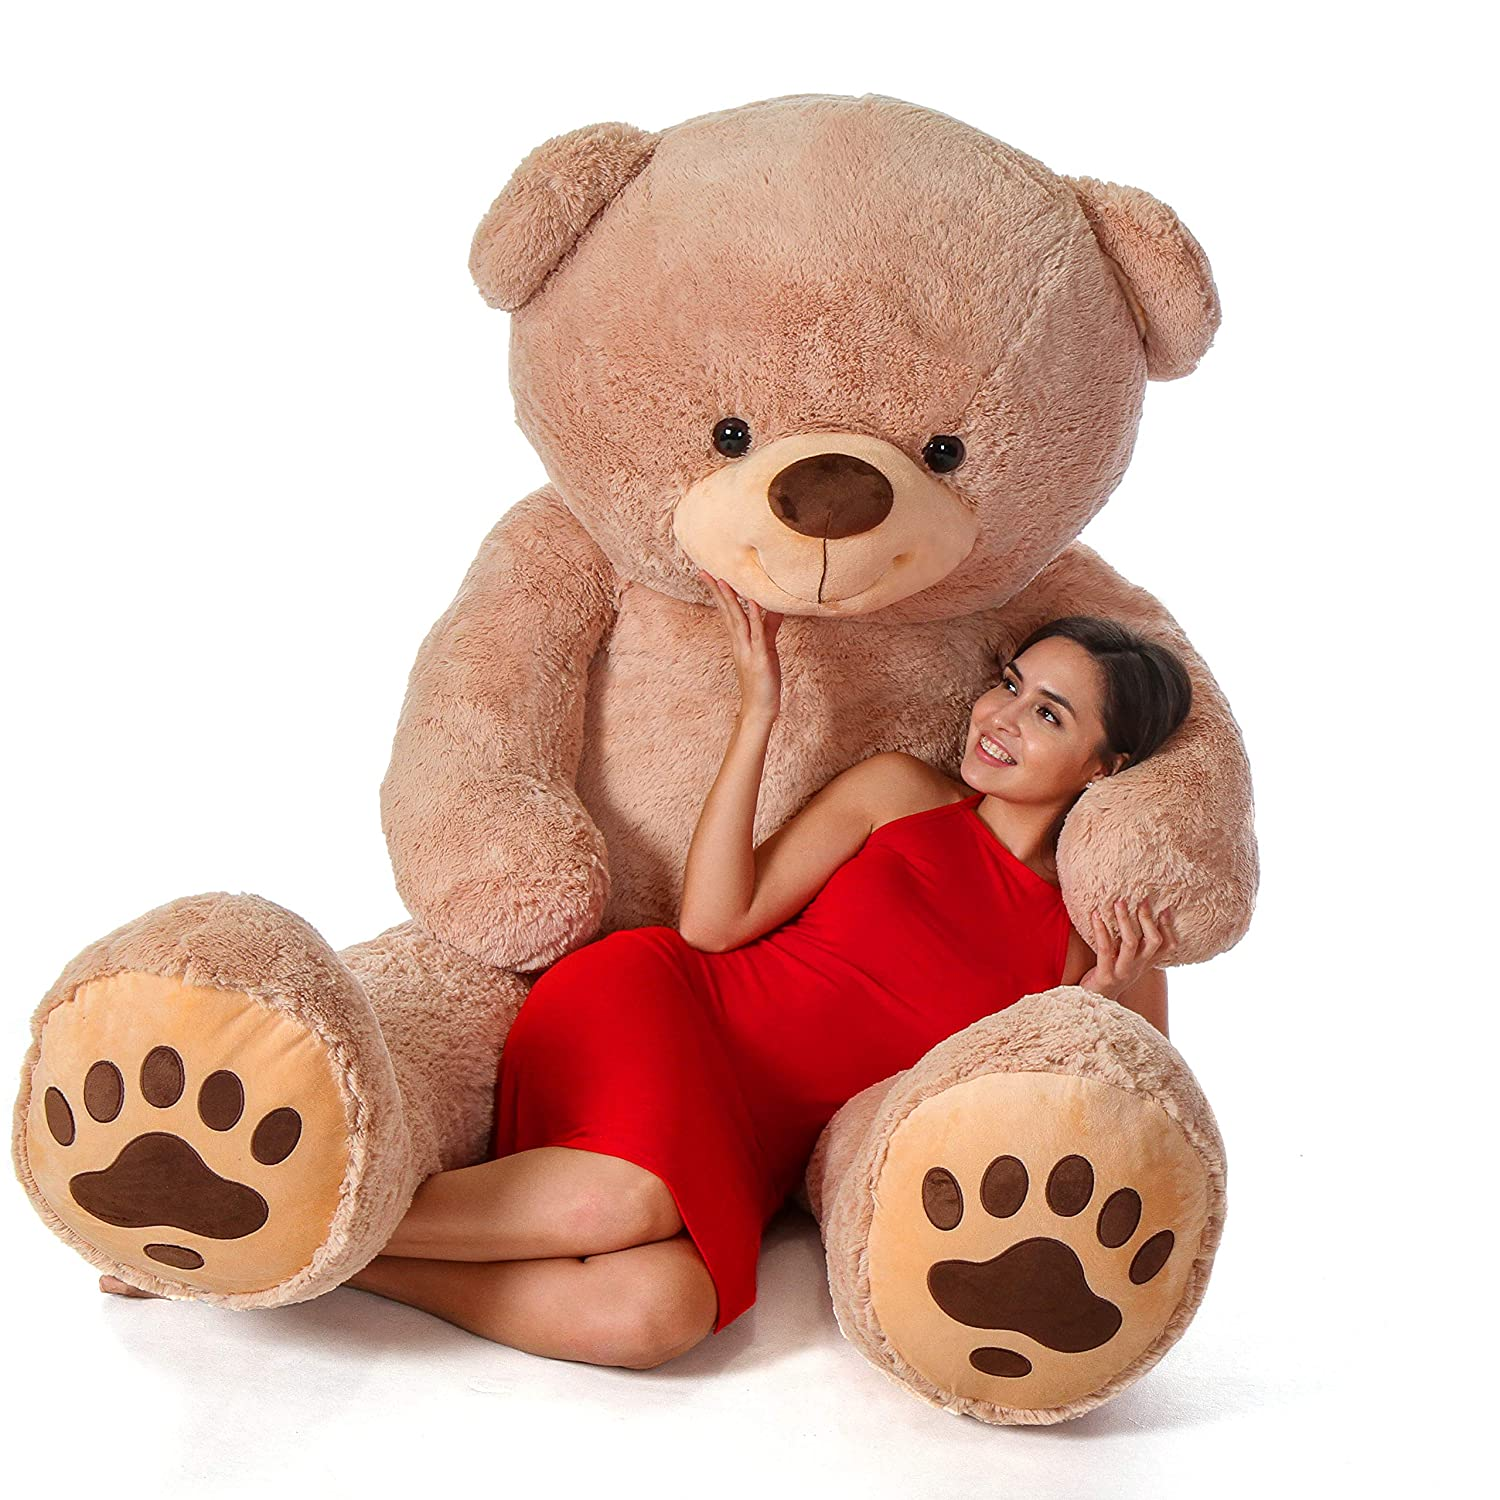 5c49118a7ef6 Buy Giant Teddy Teddy & Hugs Brand Bear (7 Foot) Online at Low Prices in  India - Amazon.in